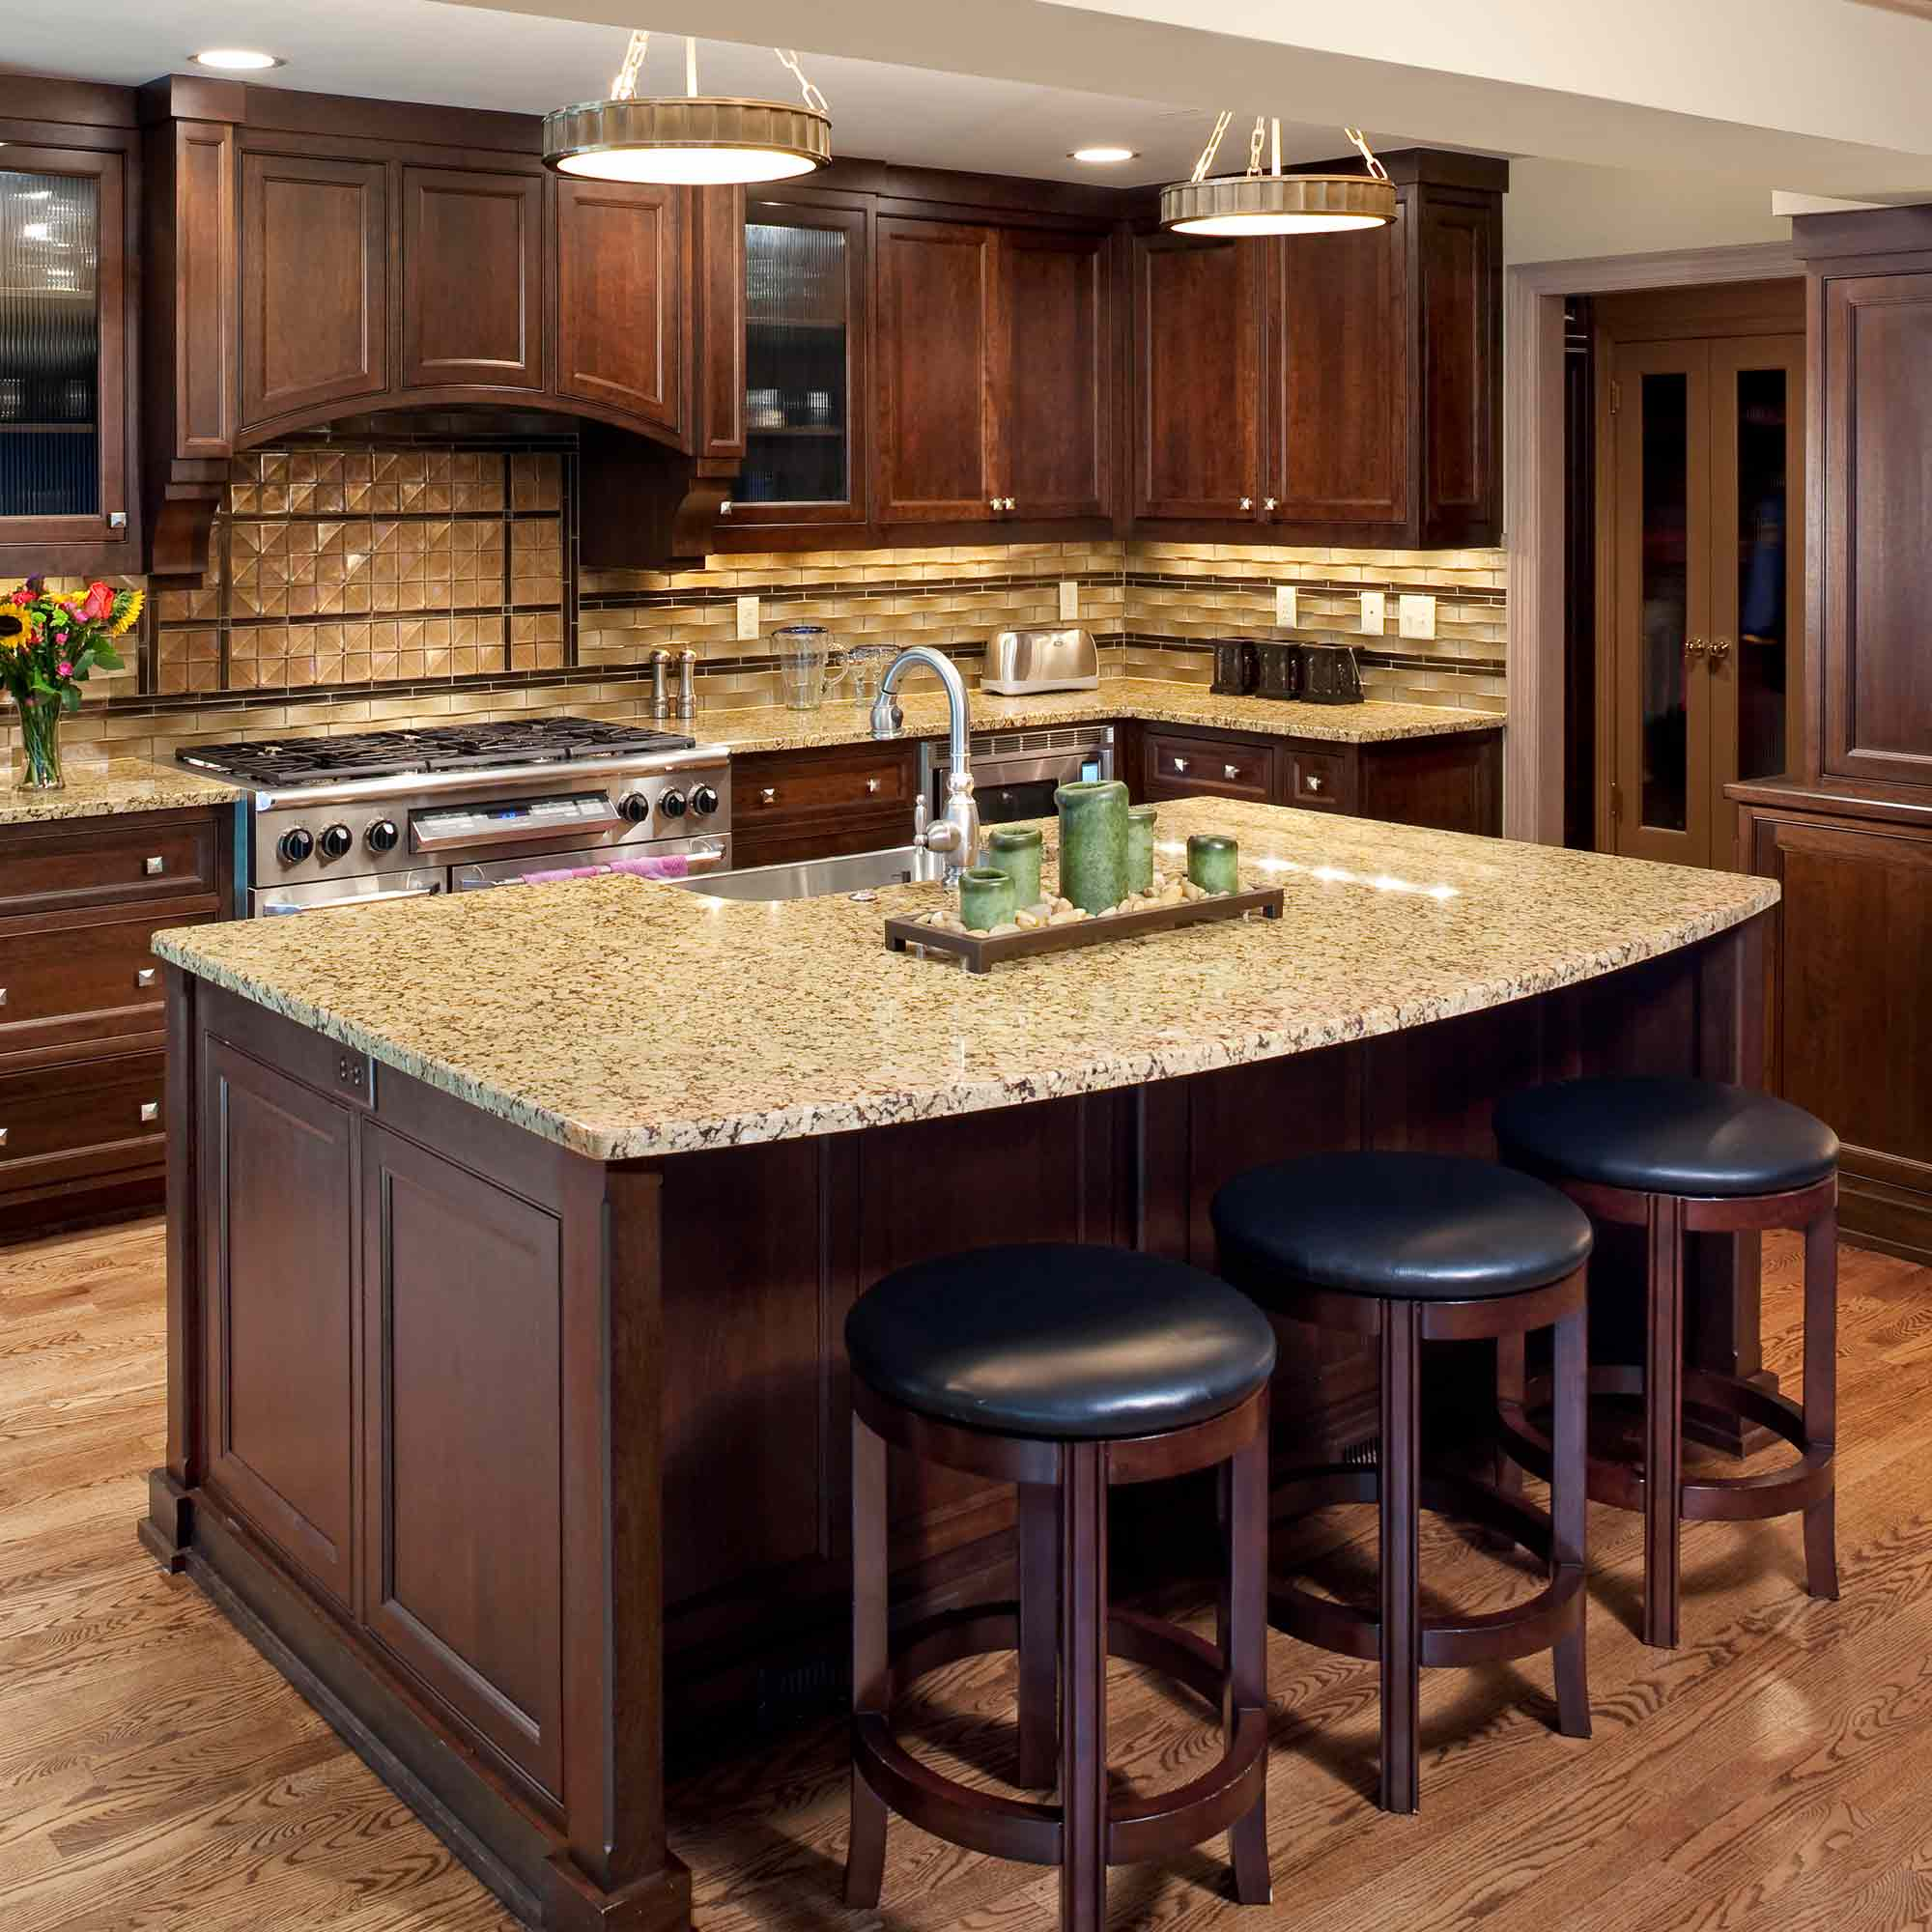 At Ruvin Bros. the customer is at the center of every project. Whether your project is large or small, our consistent, repeatable process allows us to understand your goals for both design and budget and maximize the value we can provide.